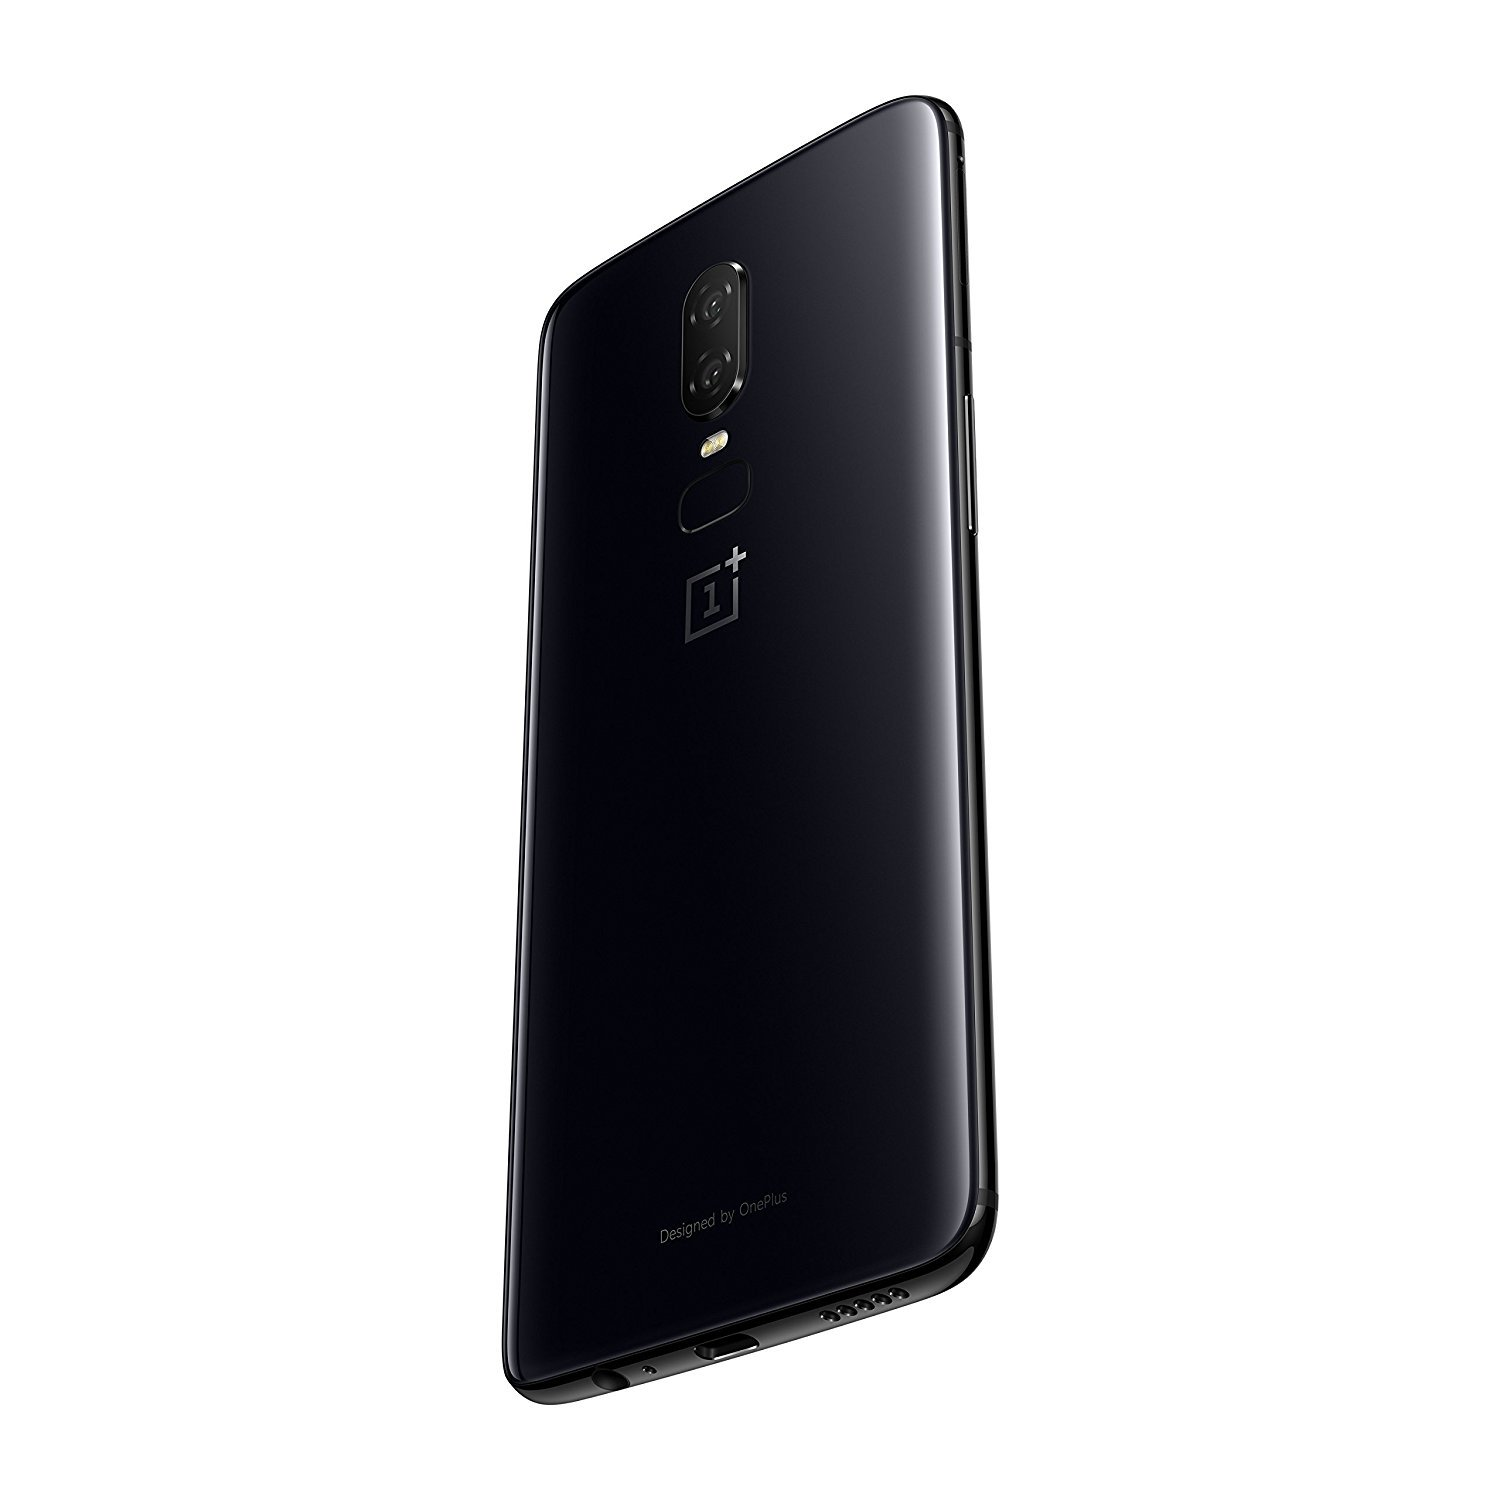 Amazon Listing reveals everything about the OnePlus 6 11